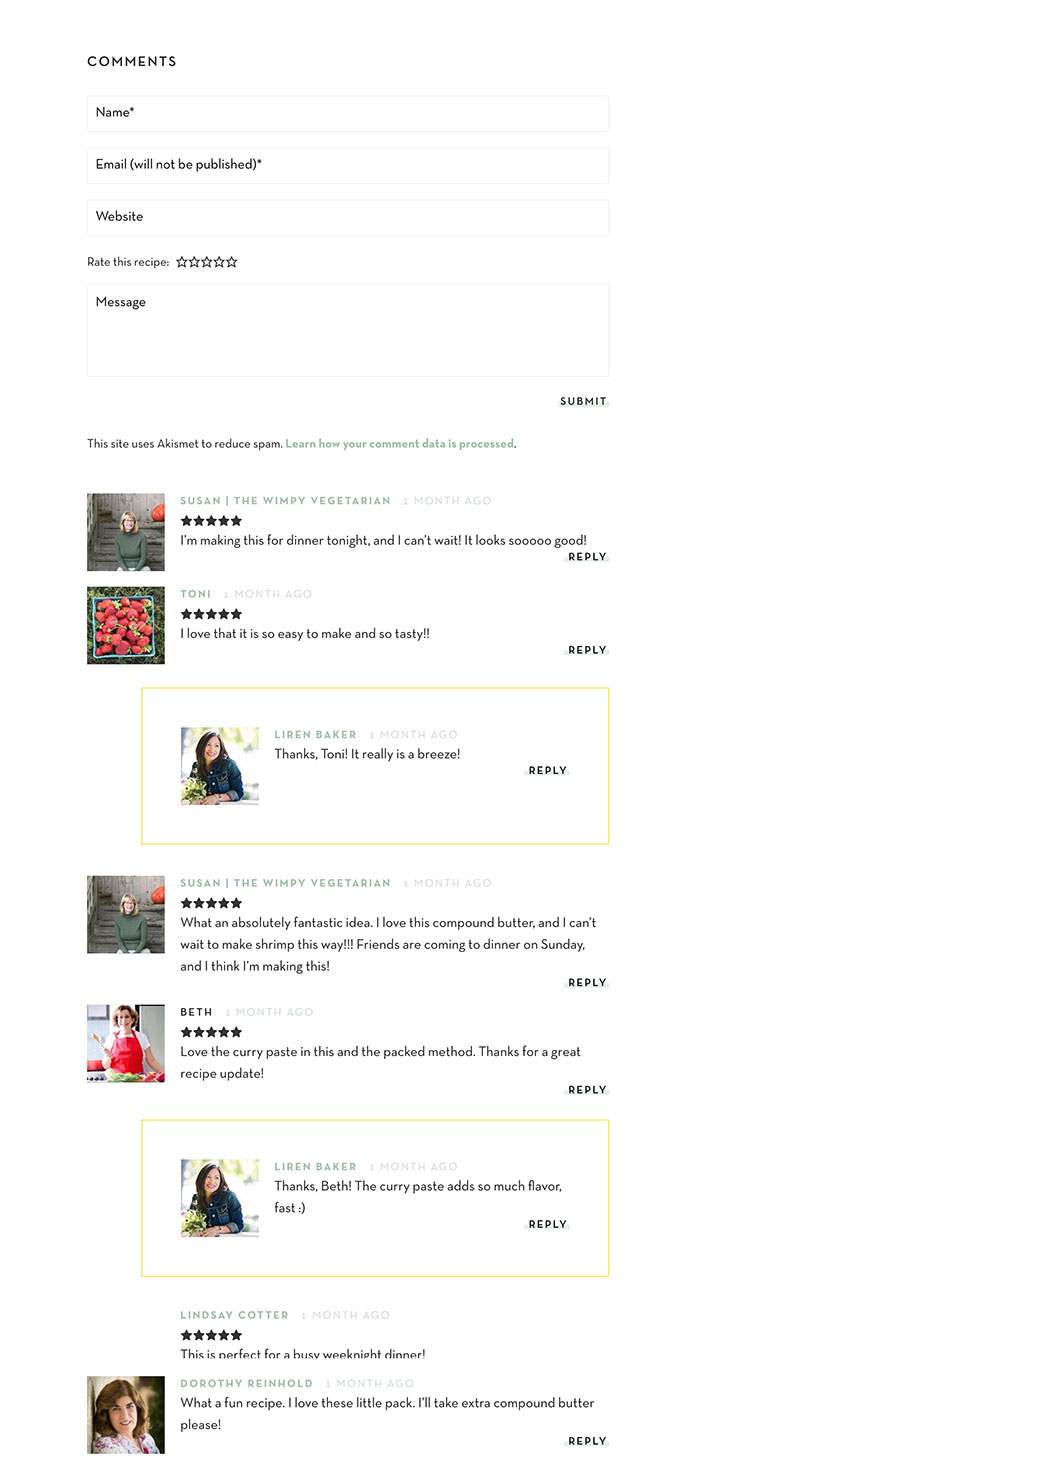 Screenshot of customized WordPress comments for Kitchen Confidante